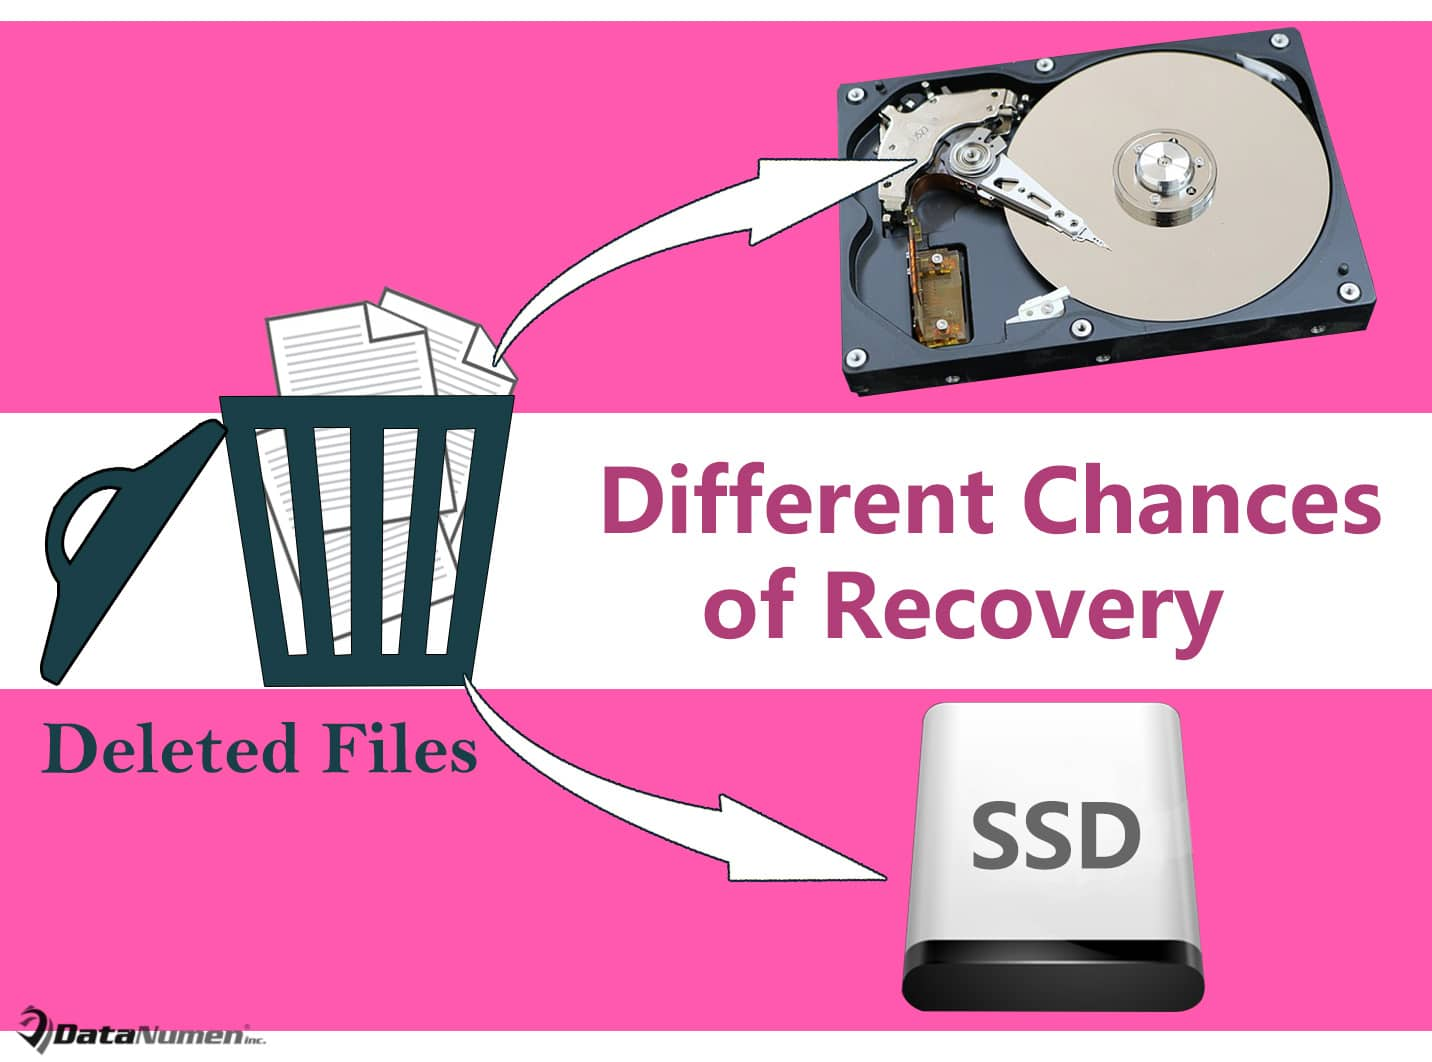 SSD vs HDD: Different Chances of Recovering Deleted Files